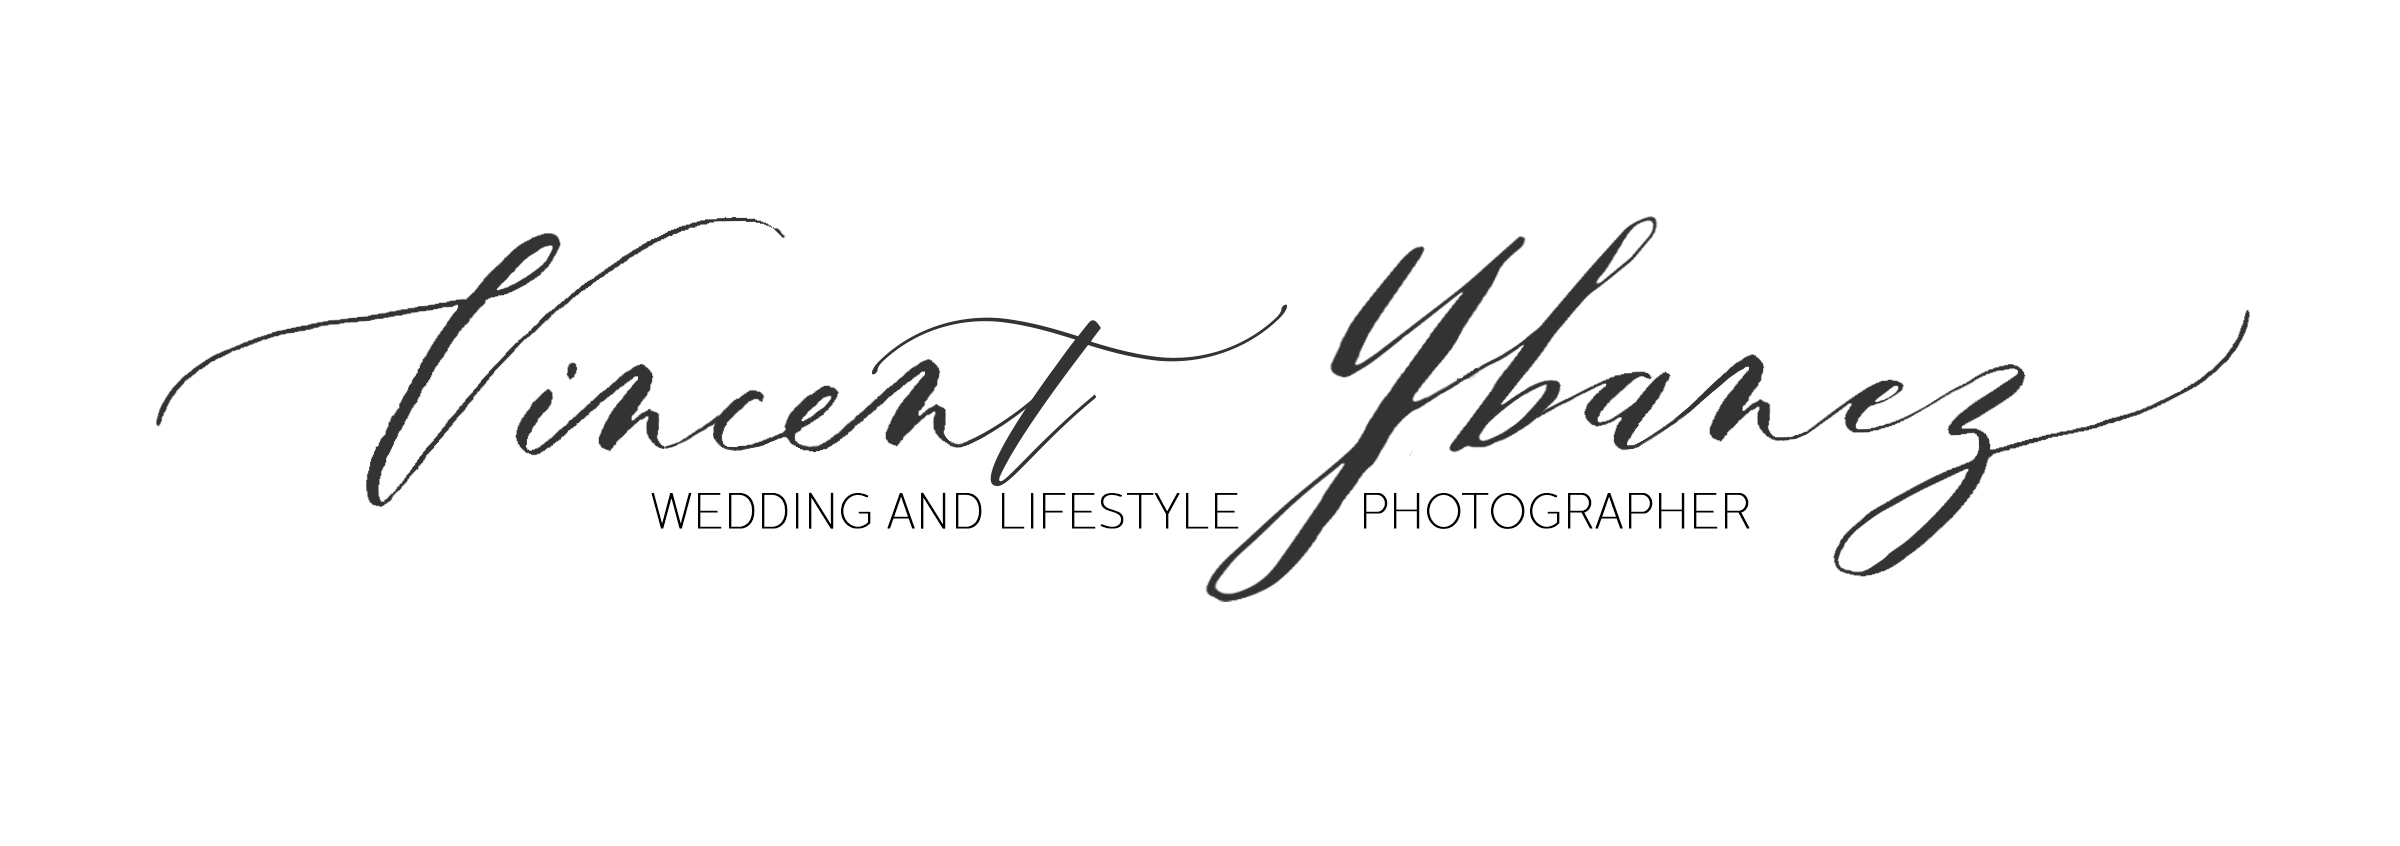 Edmonton Wedding Photographer | Vincent Ybanez Photography